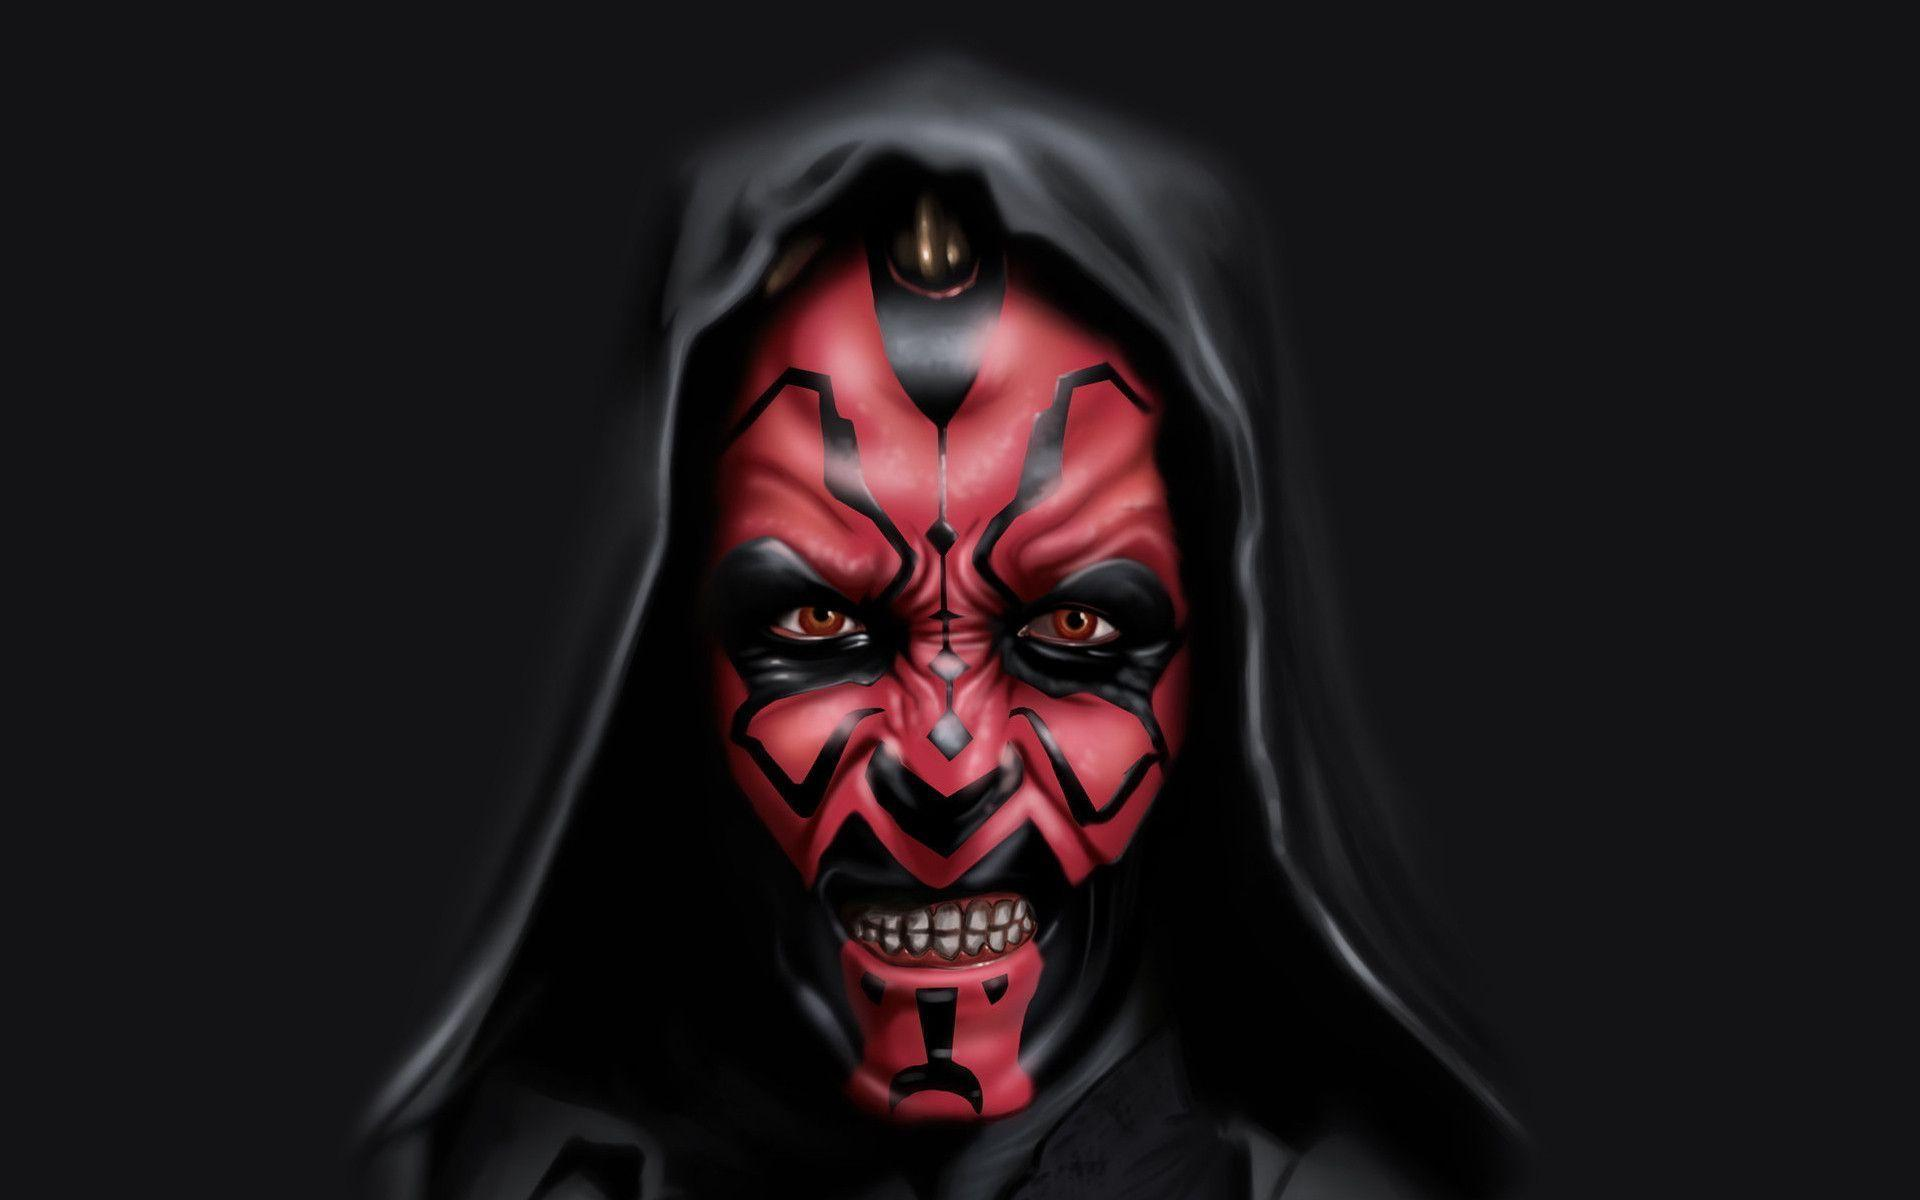 Sith darth maul Wallpapers